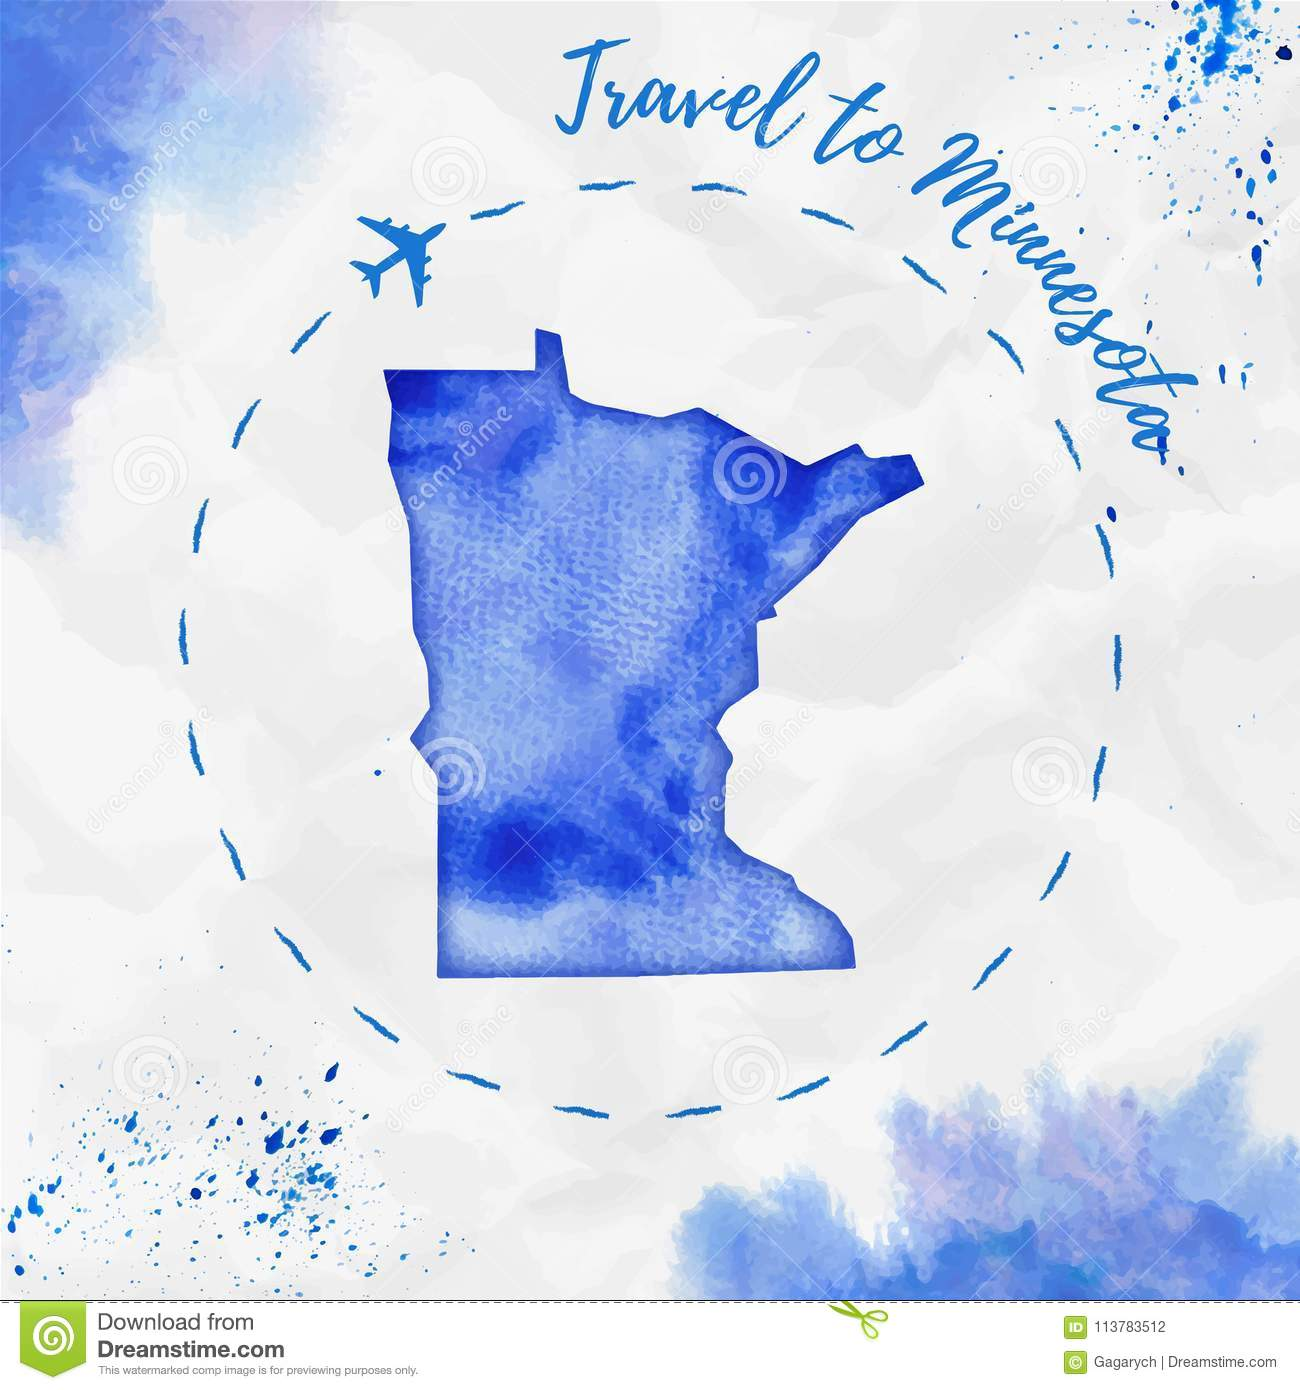 Minnesota Watercolor Us State Map In Blue Colors Stock Vector - Minnesota-in-us-map